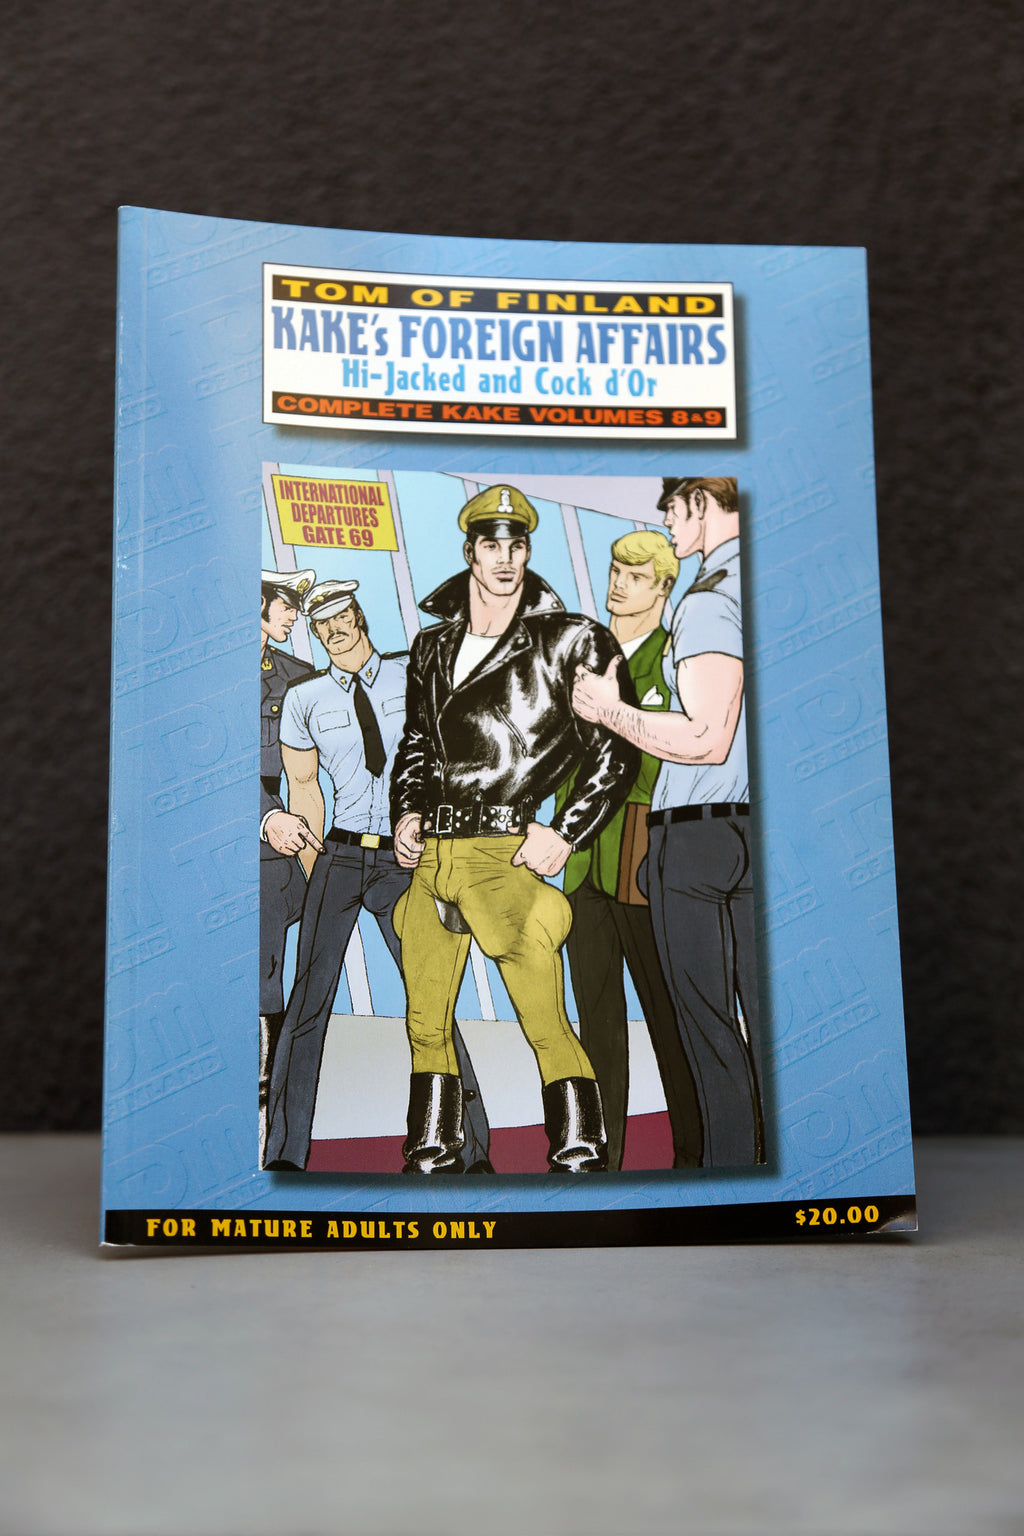 Tom of Finland Kake's Foreign Affairs: Hi-Jacked and Cock d'Or